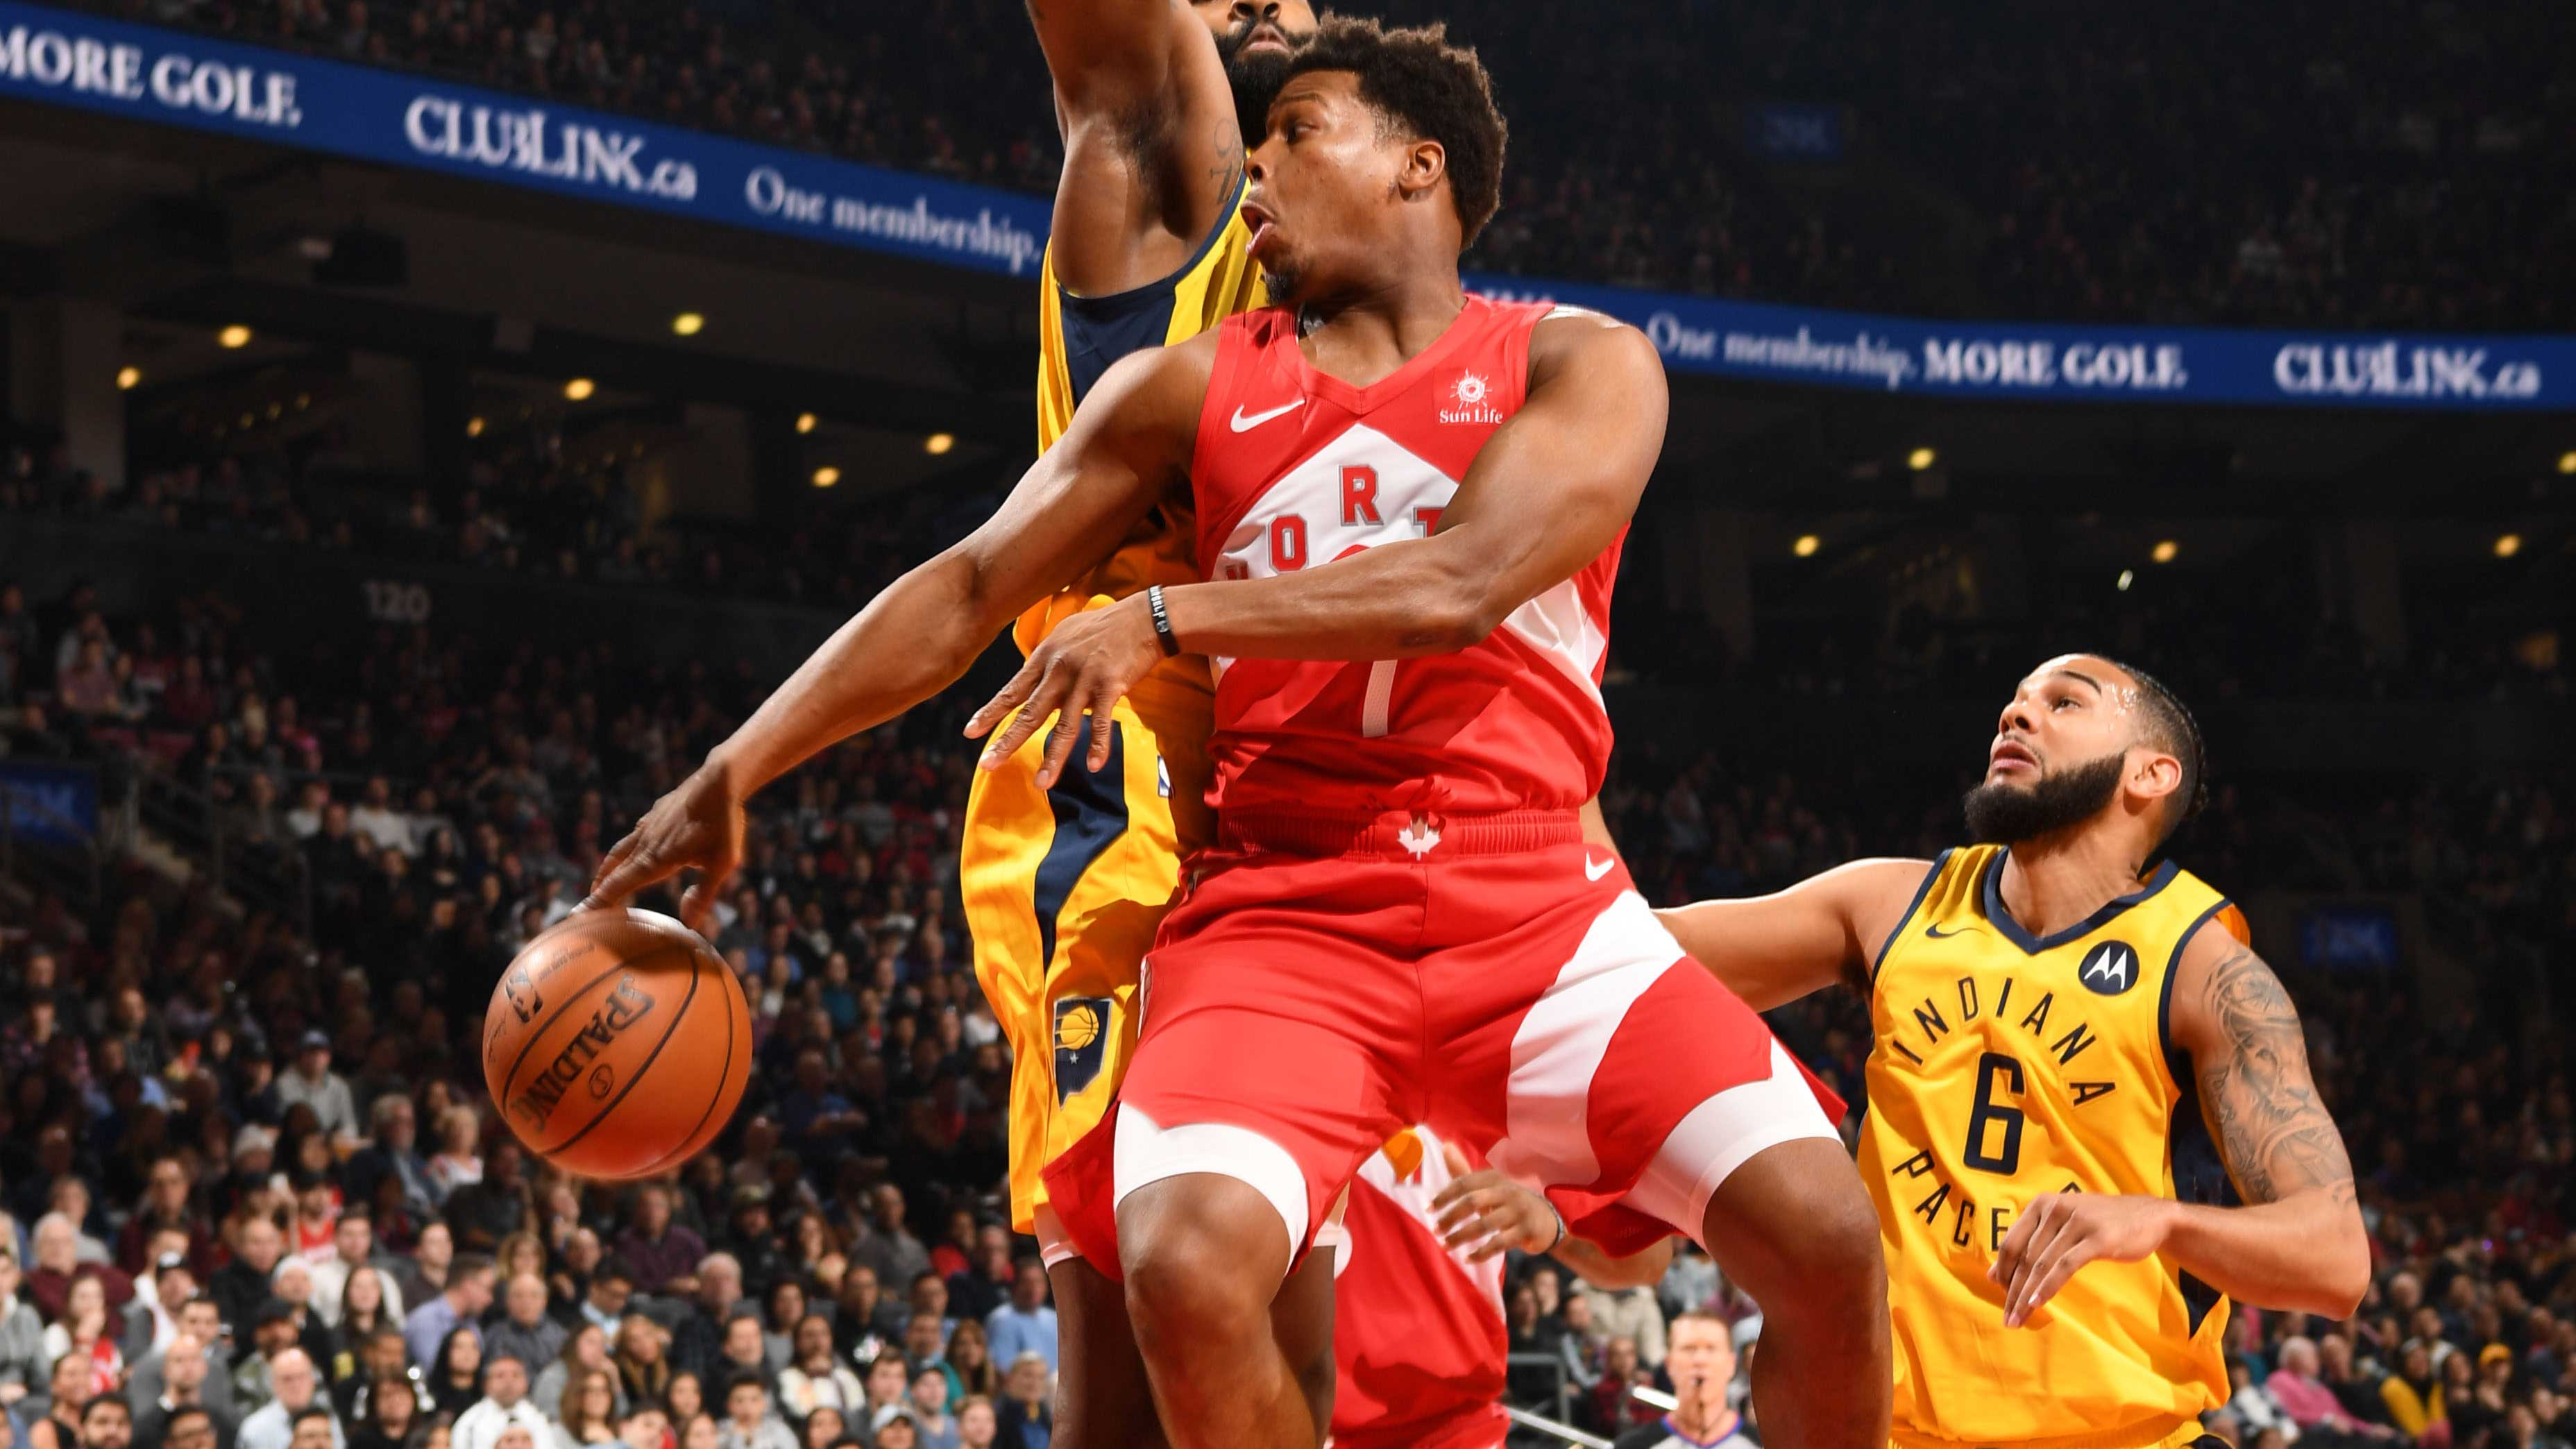 GAME RECAP: Raptors 121, Pacers 105